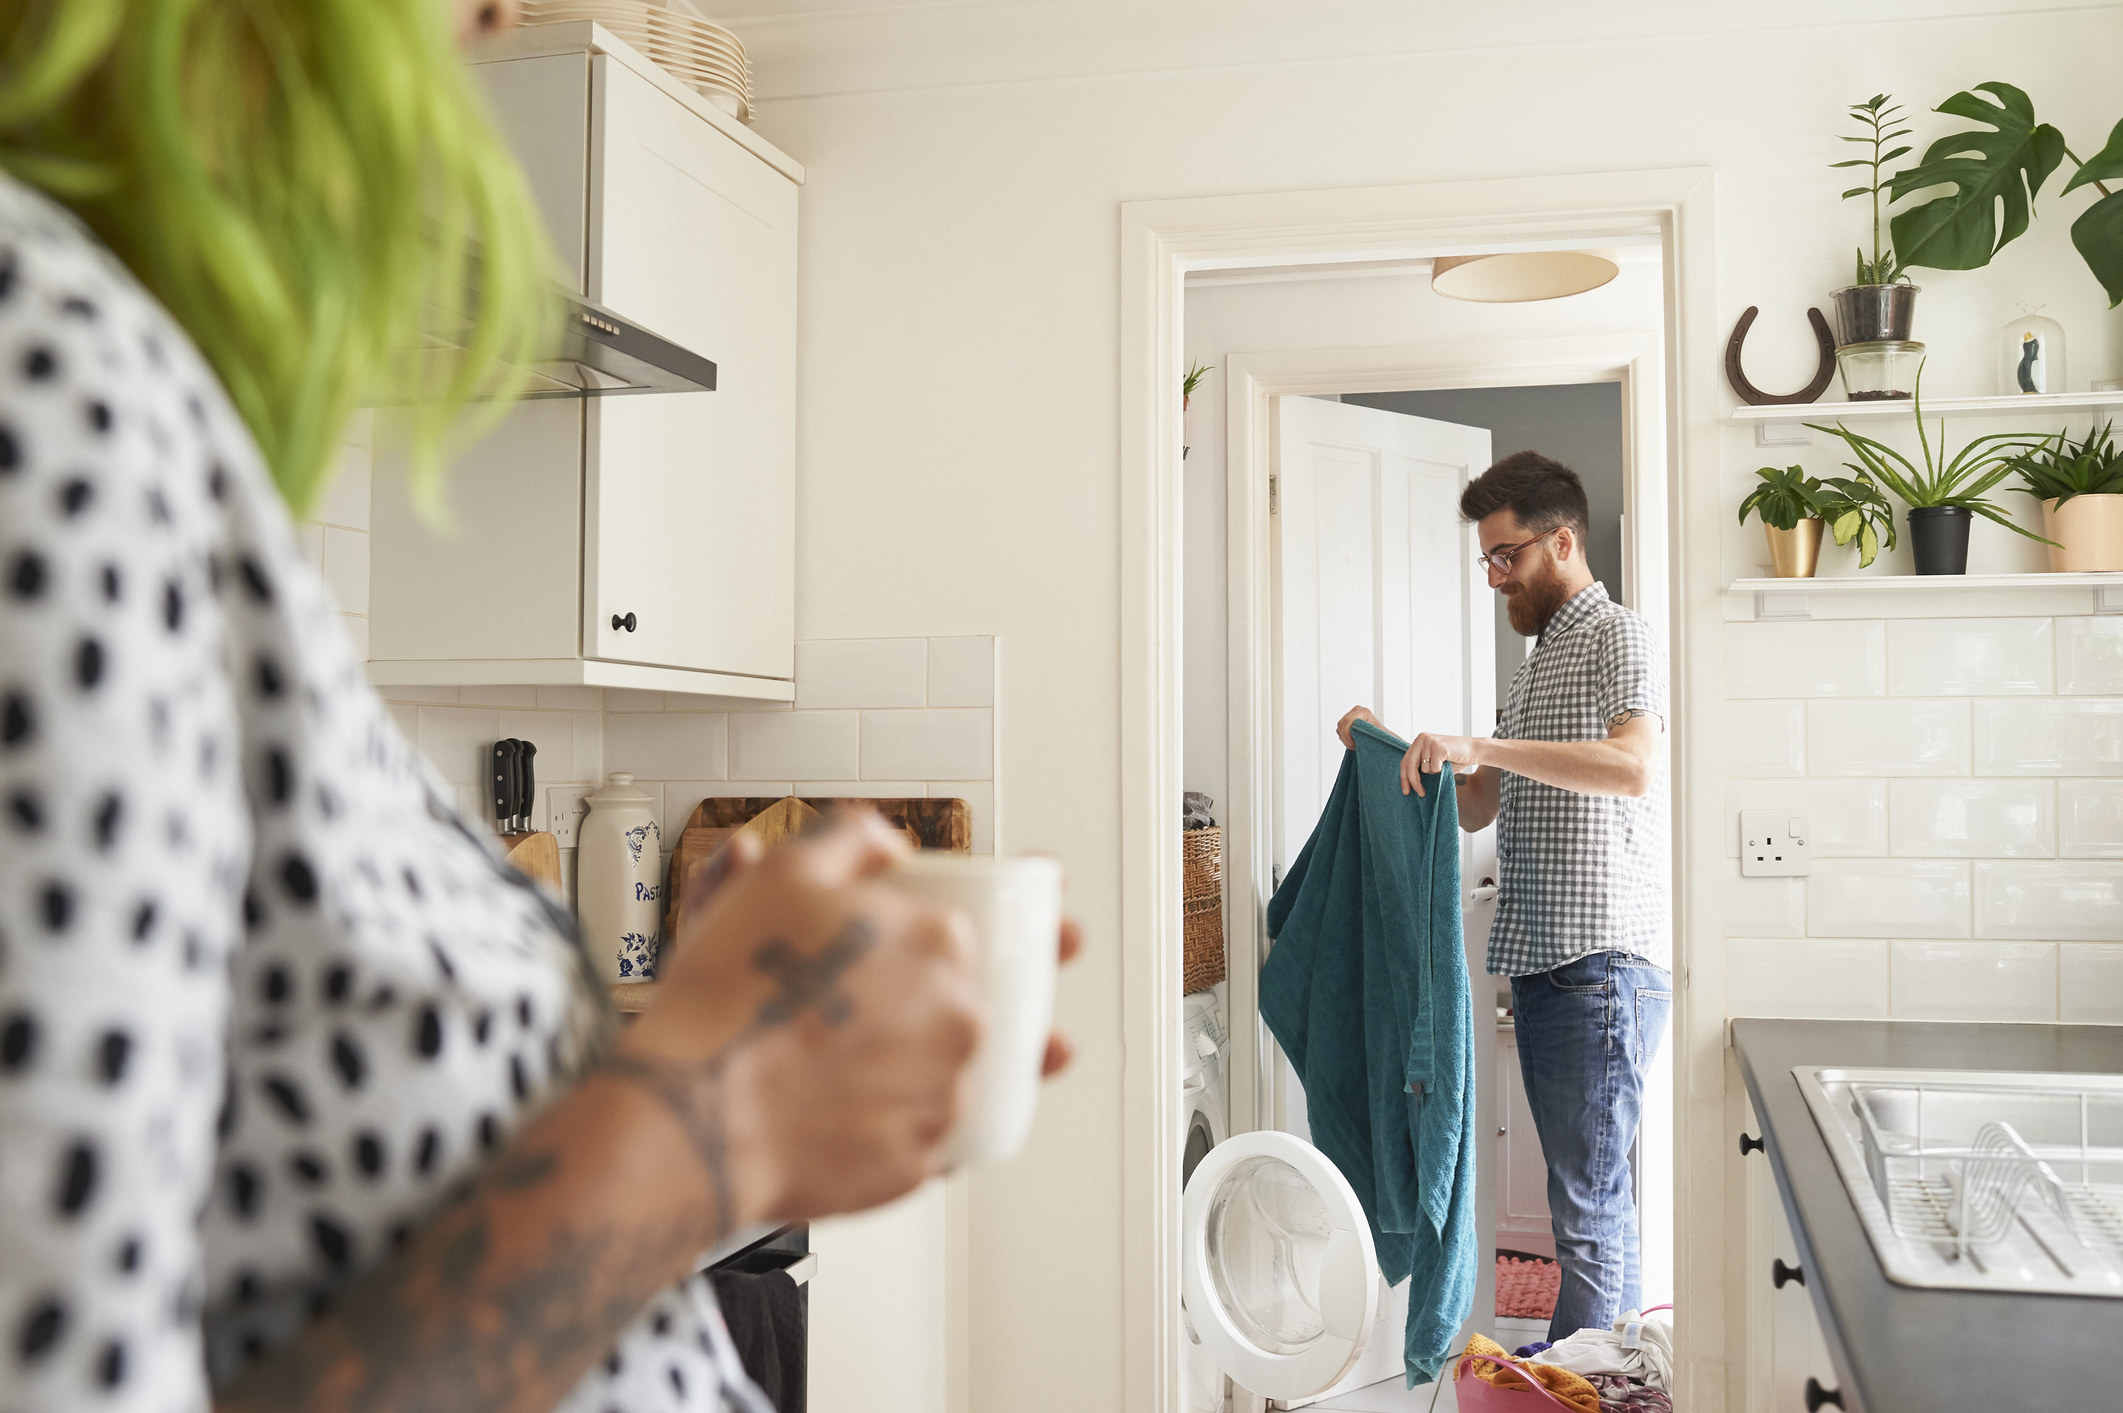 Husband doing laundry while wife watches